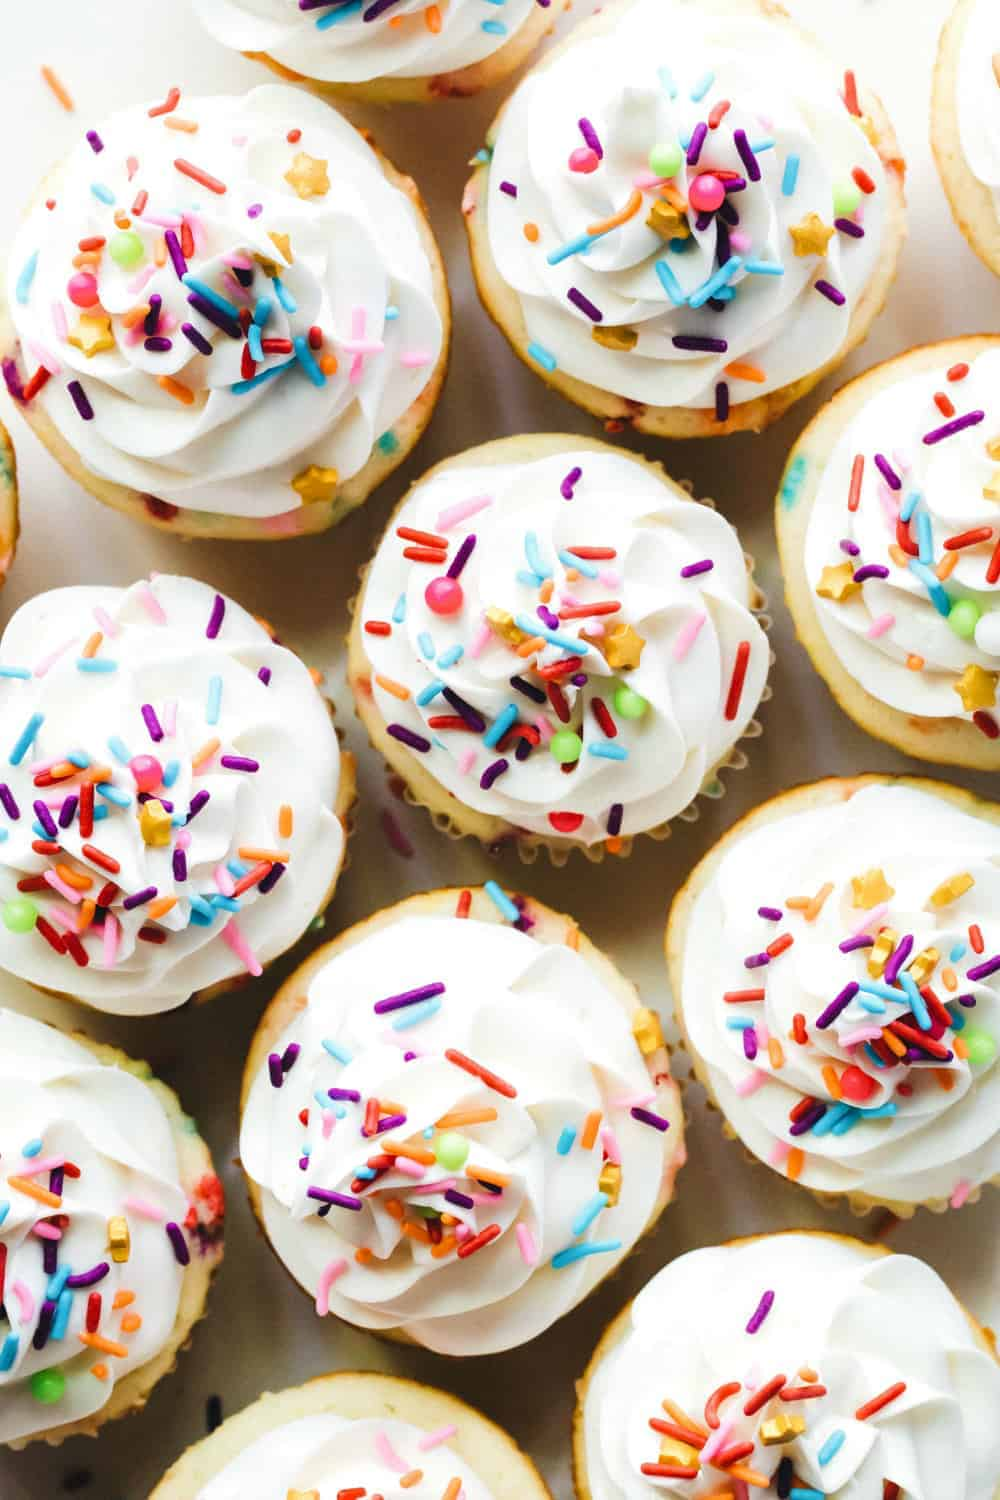 Overhead view of frosted funfetti cupcakes, topped with sprinkles